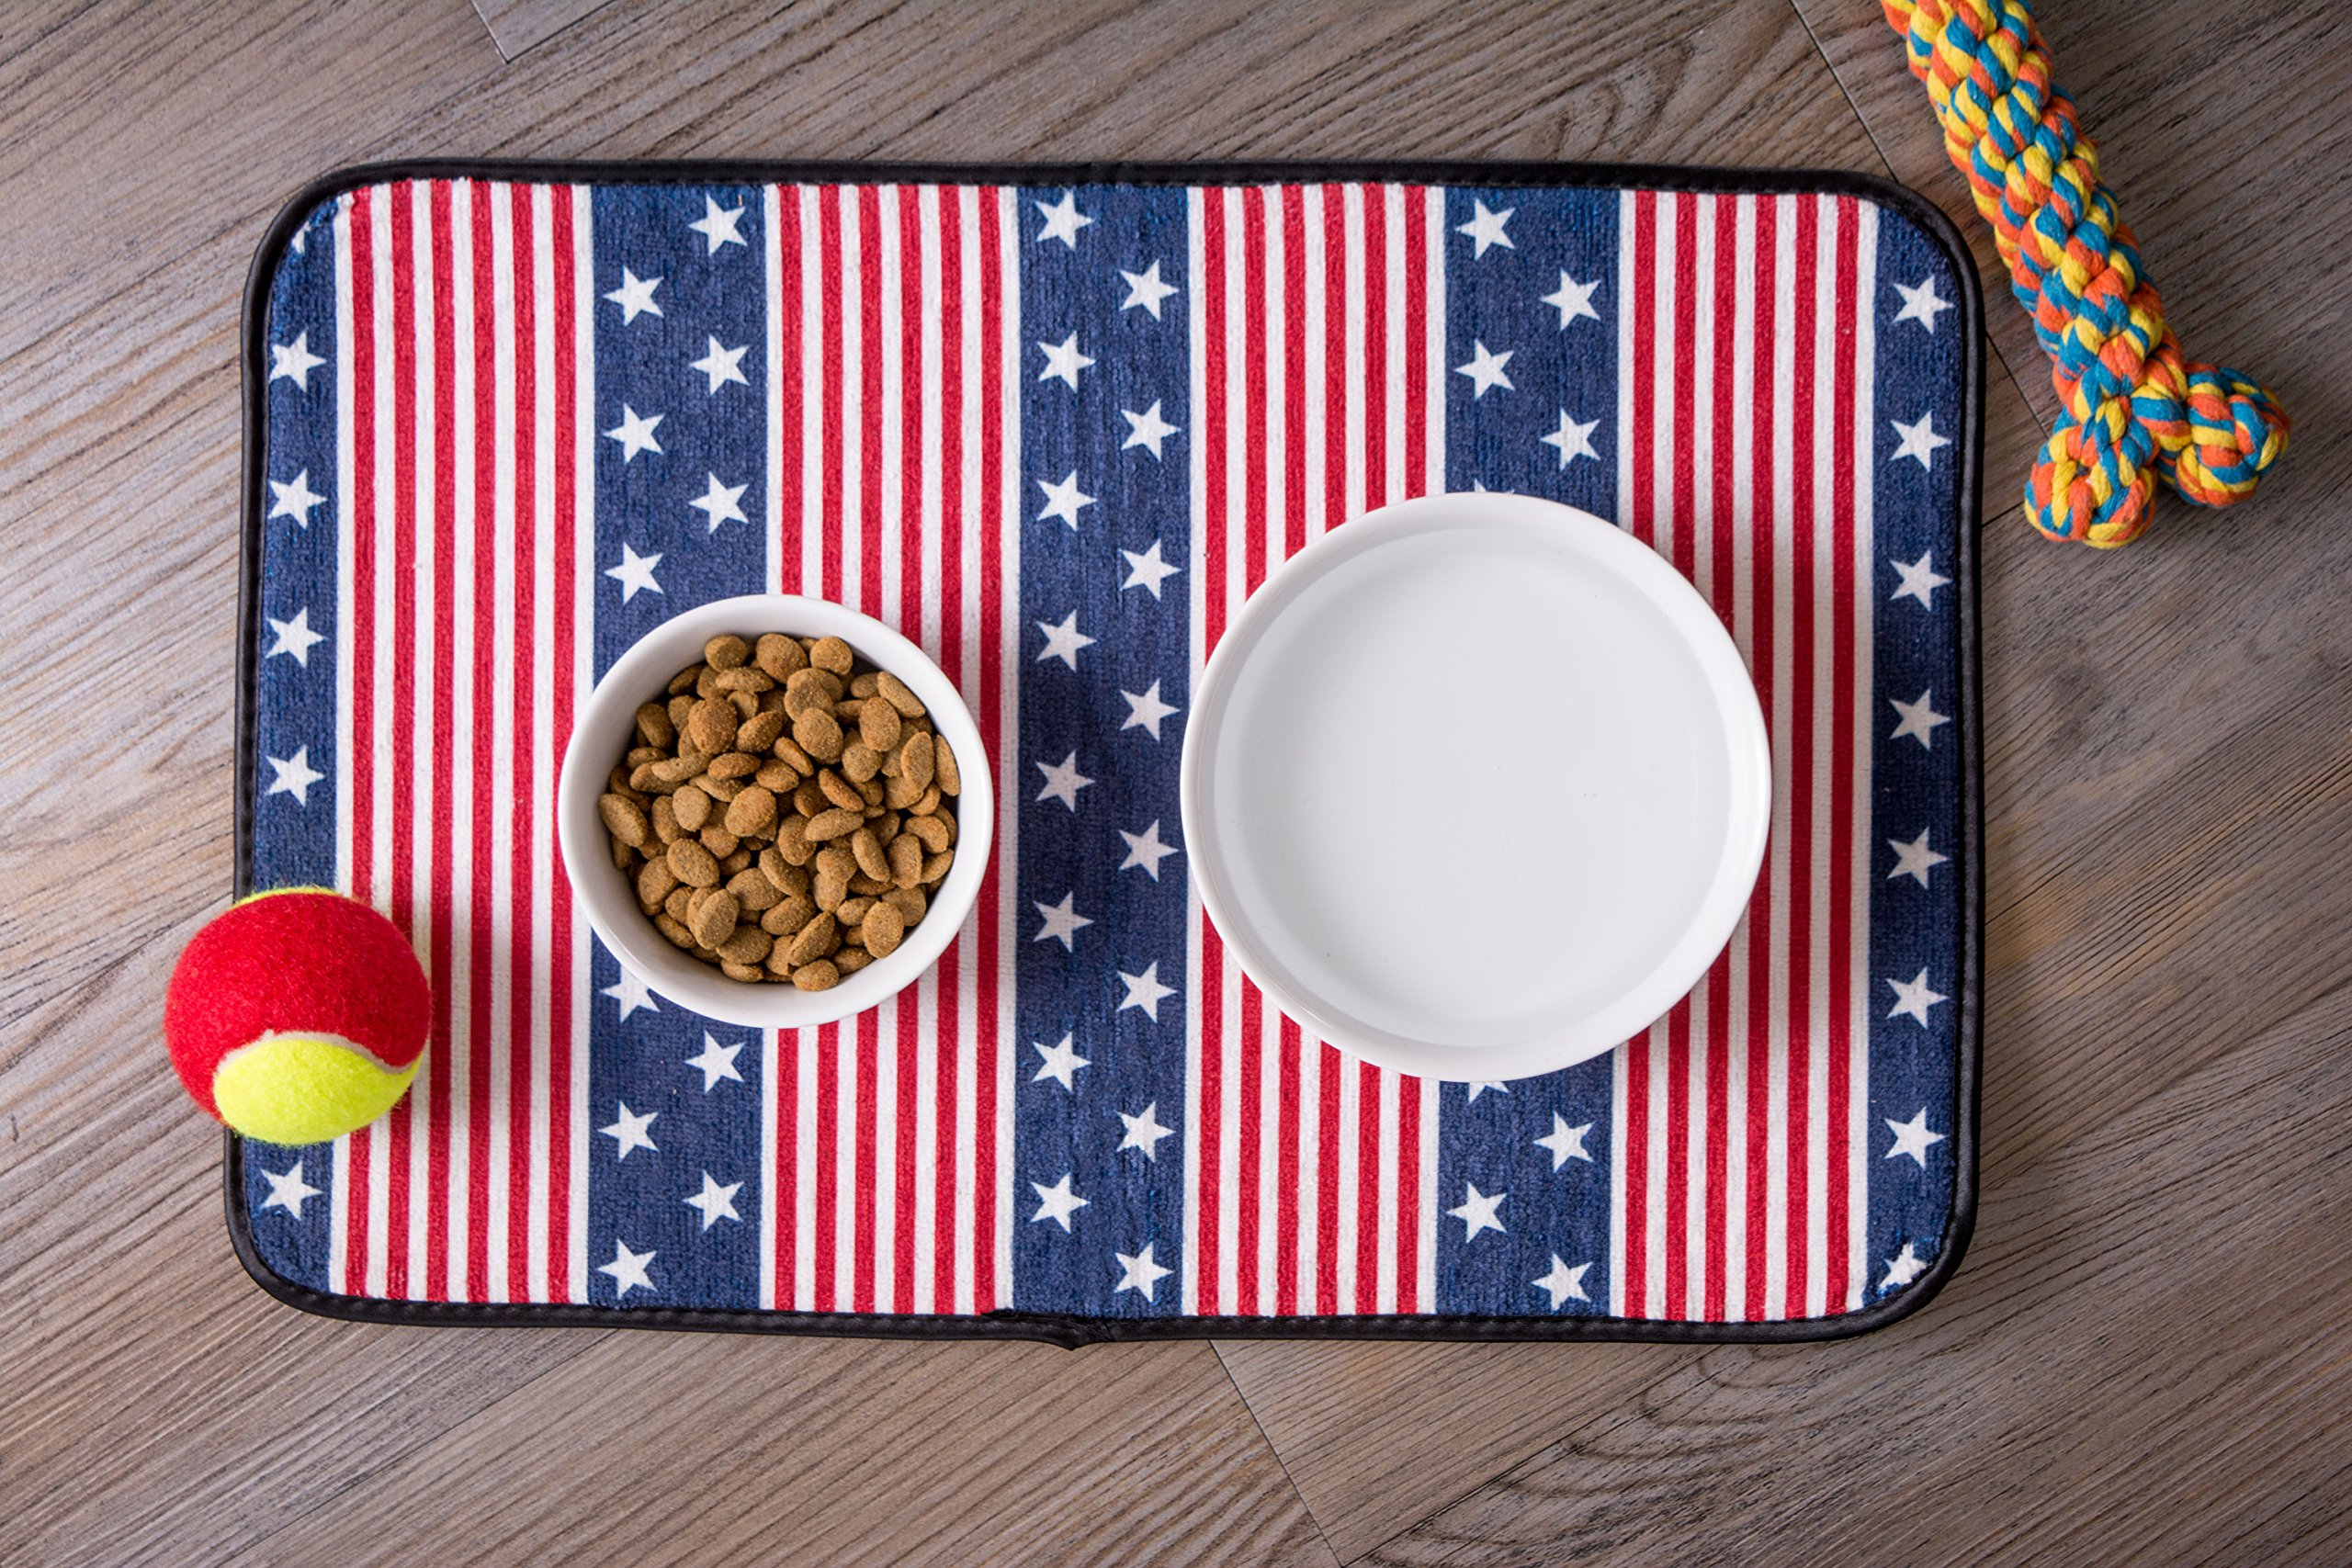 Bone Dry DII Patriotic Ceramic Pet Bowl for Food & Water with Non-Skid Silicone Rim for Dogs and Cats (Large - 7.5'' Dia x 4'' H) Stars and Stripes by Bone Dry (Image #8)